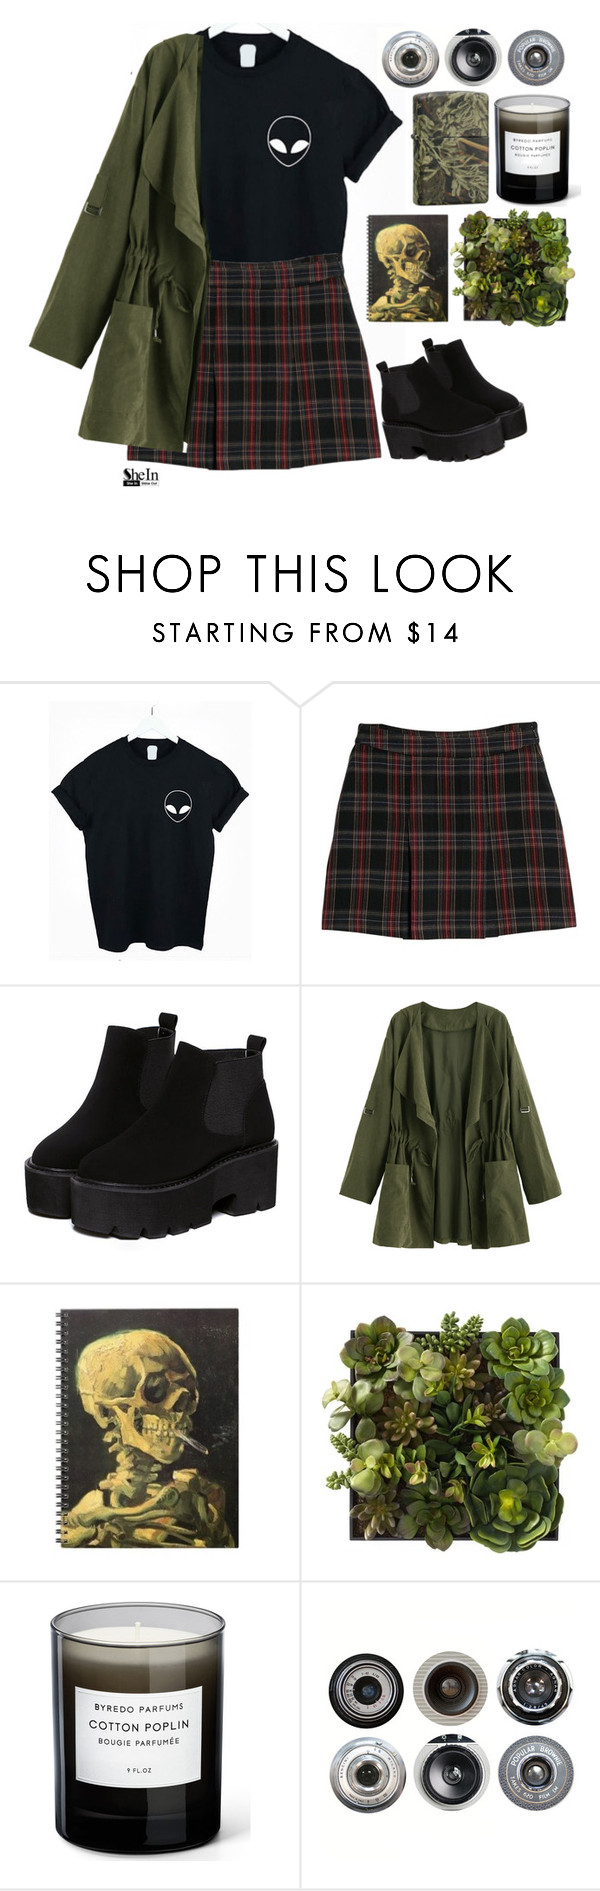 """""""#SheIn"""" by credentovideos ❤ liked on Polyvore featuring MANGO, Realtree, Byredo and Ella Doran"""